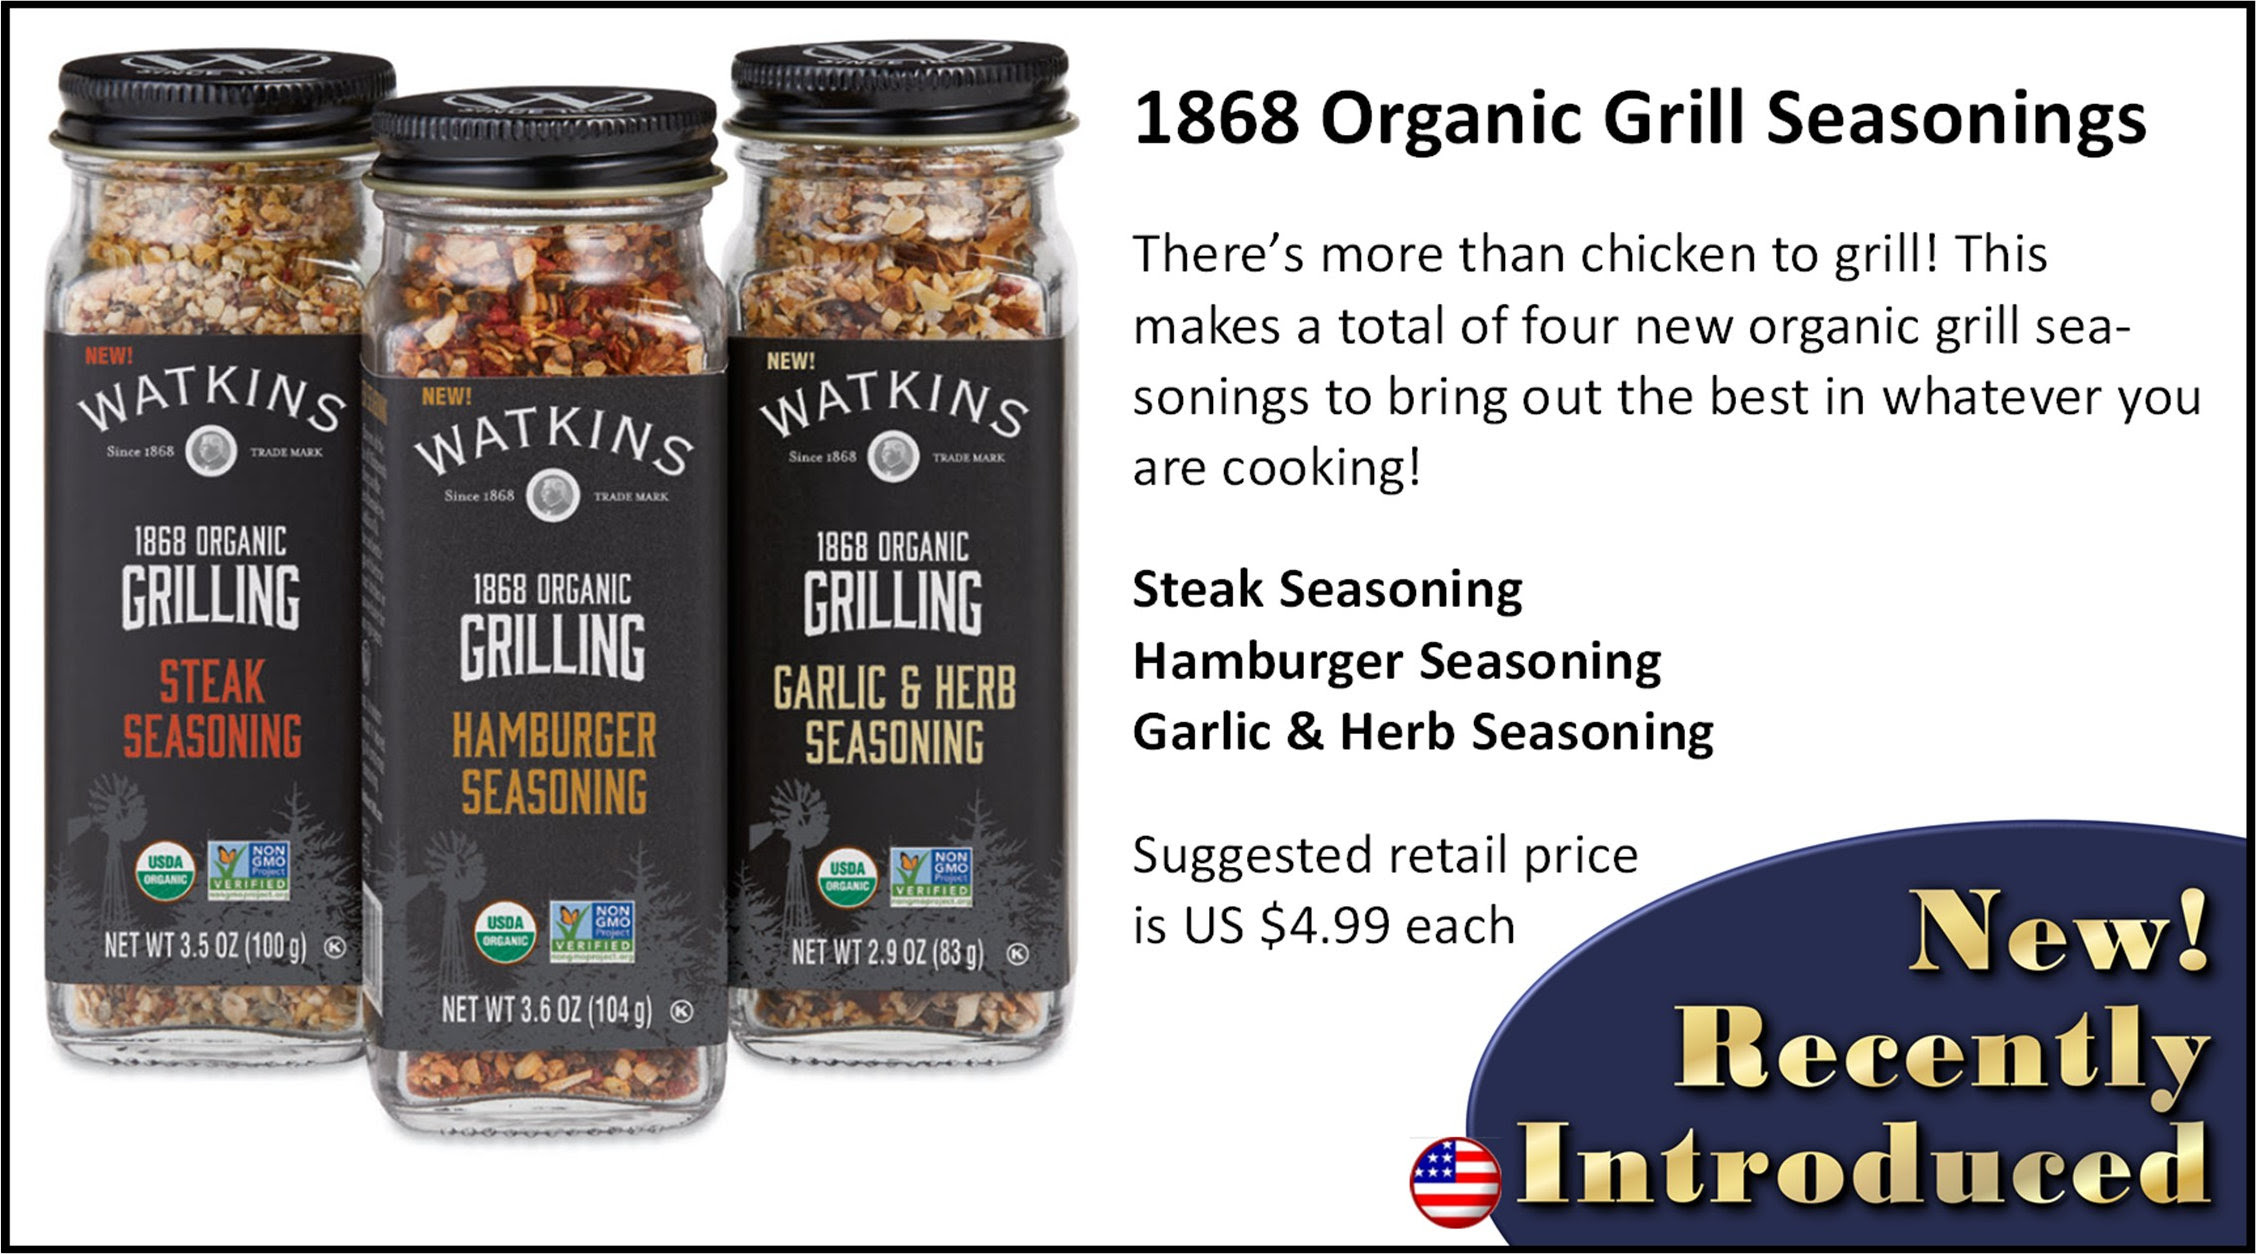 Watkins Grill Seasonings